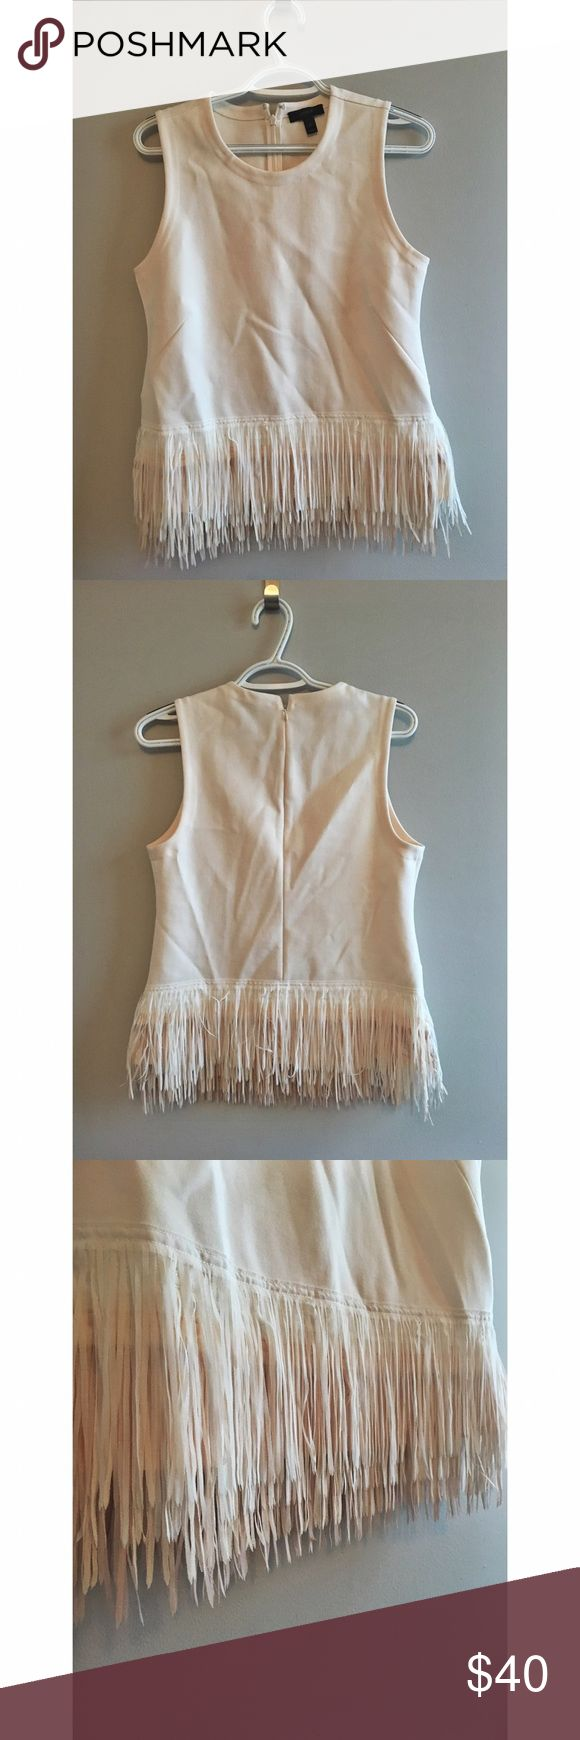 J. Crew Ombré Fringe Tank Top J. Crew fringe tank top with cream, tan, and blush colored ombre fringe. J. Crew Tops